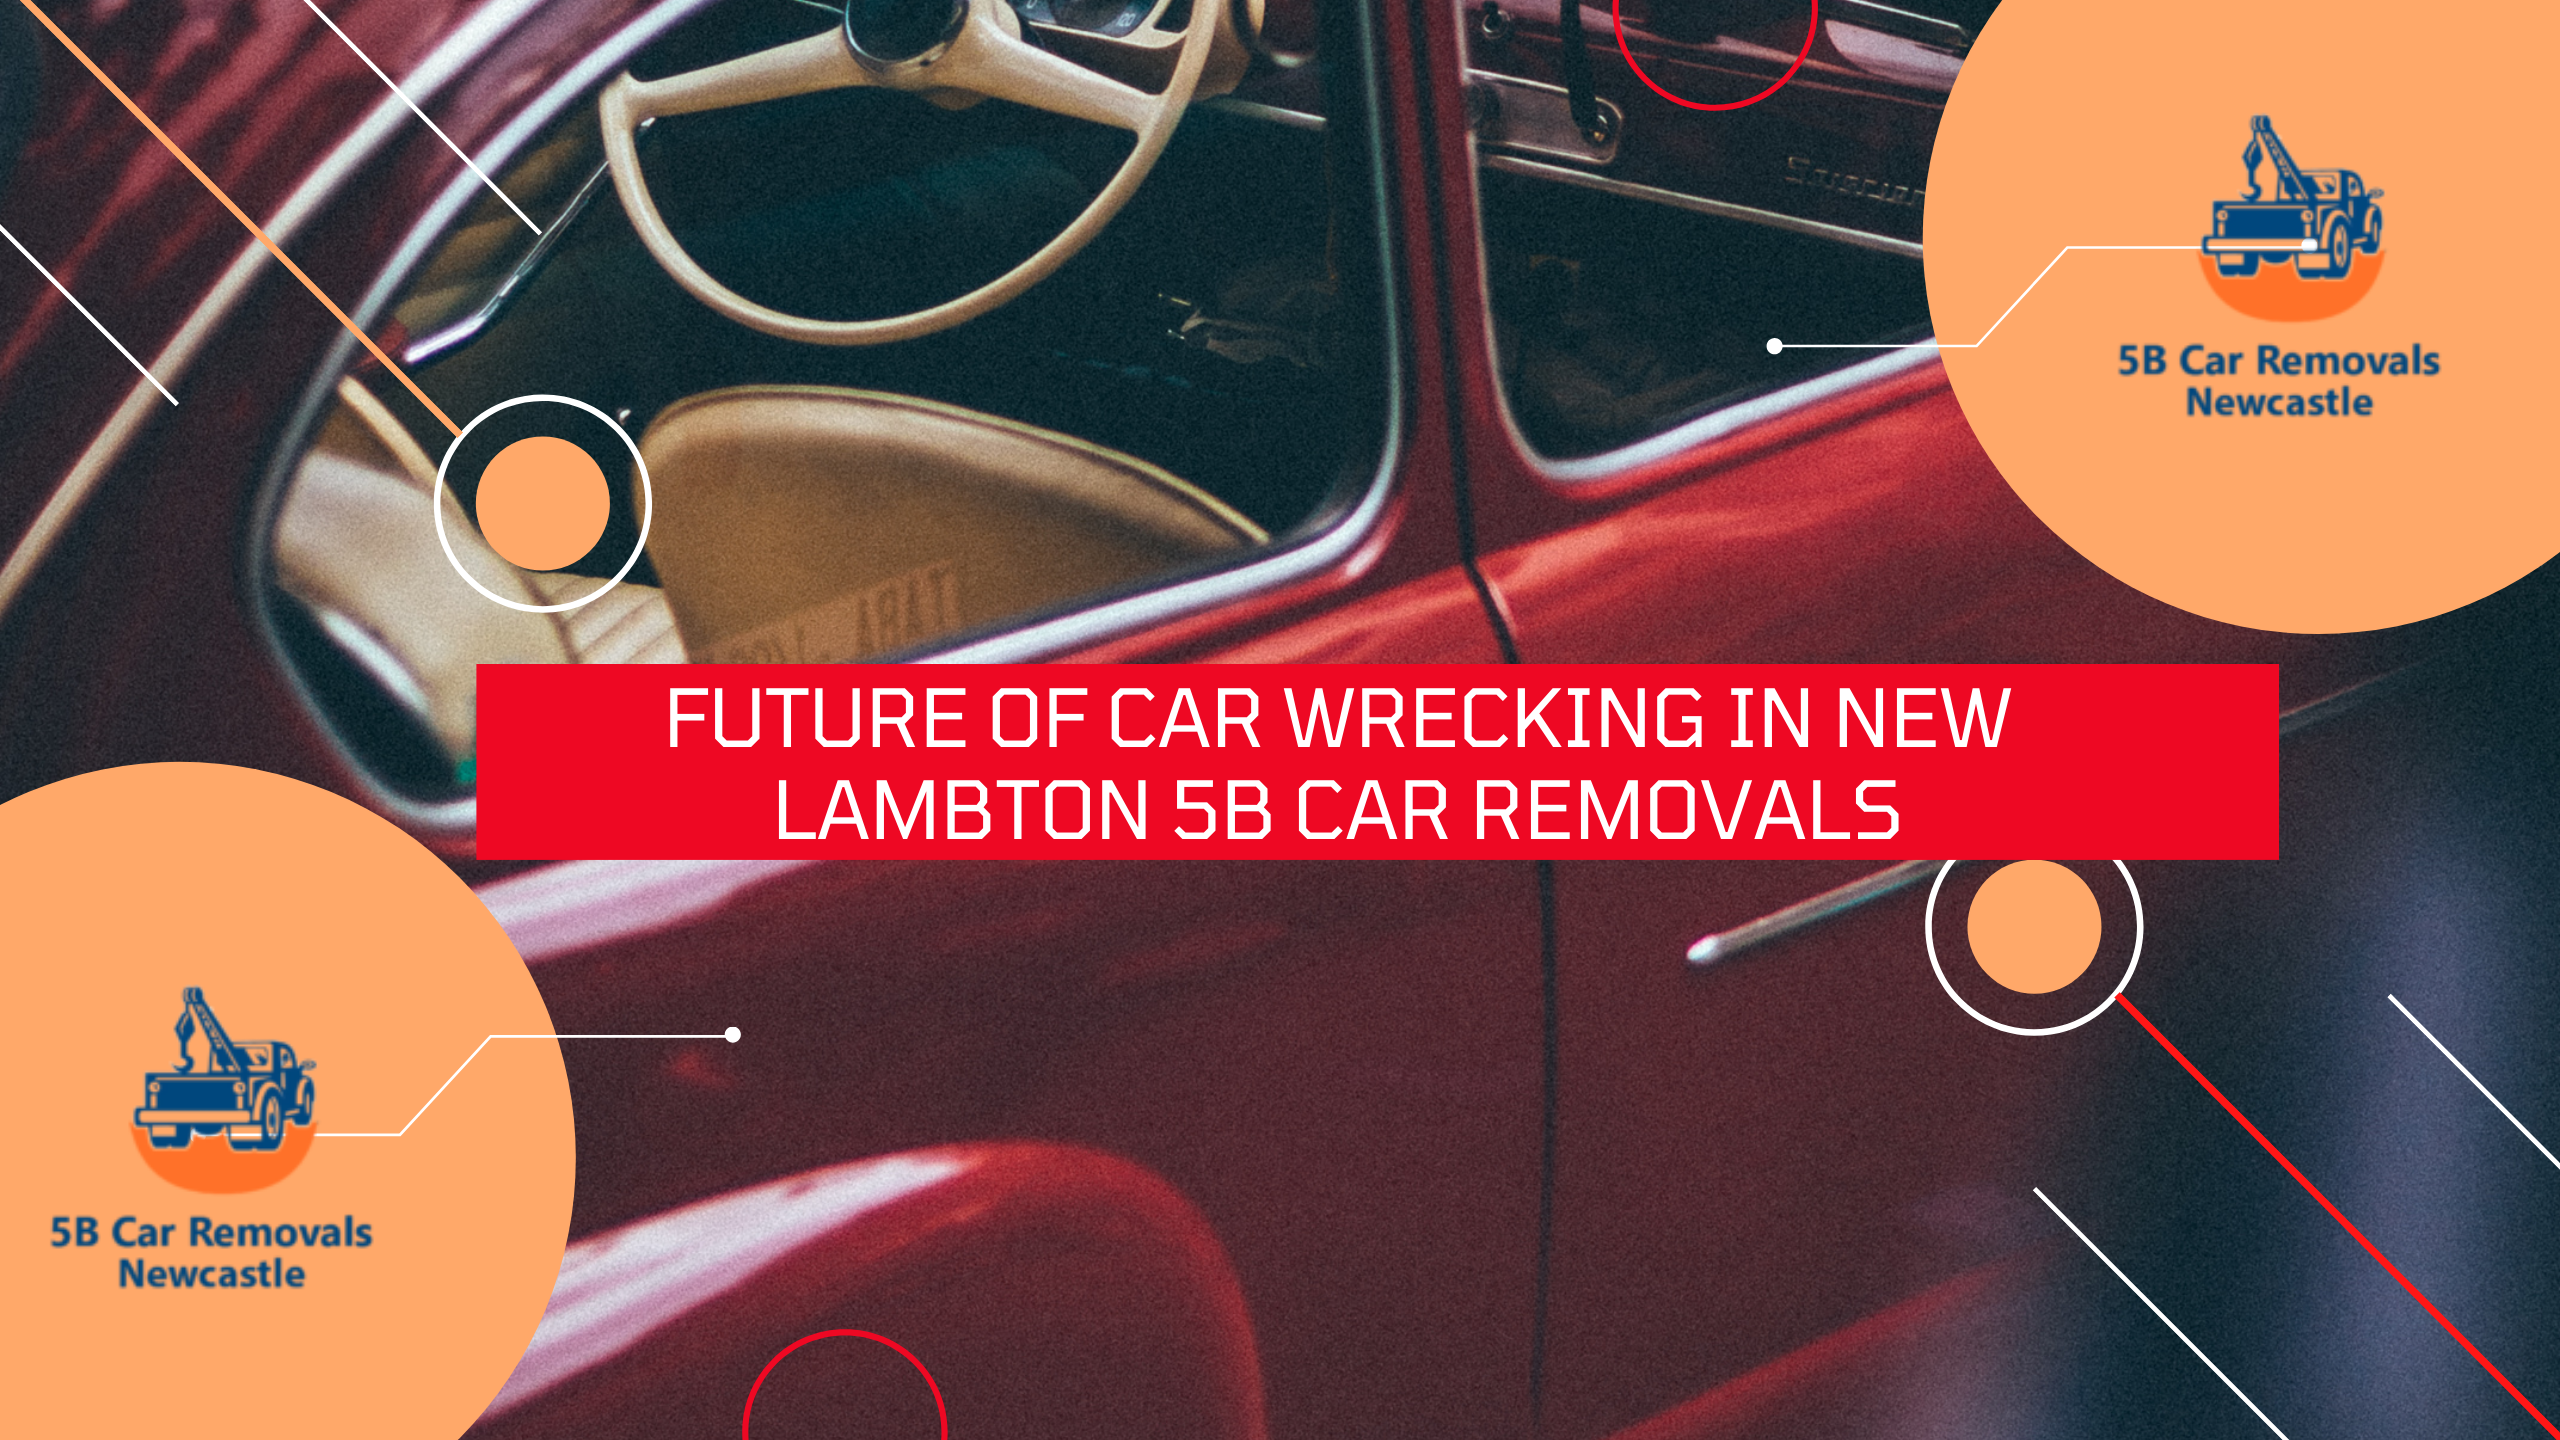 Future of car wrecking in New Lambton 5B car removals